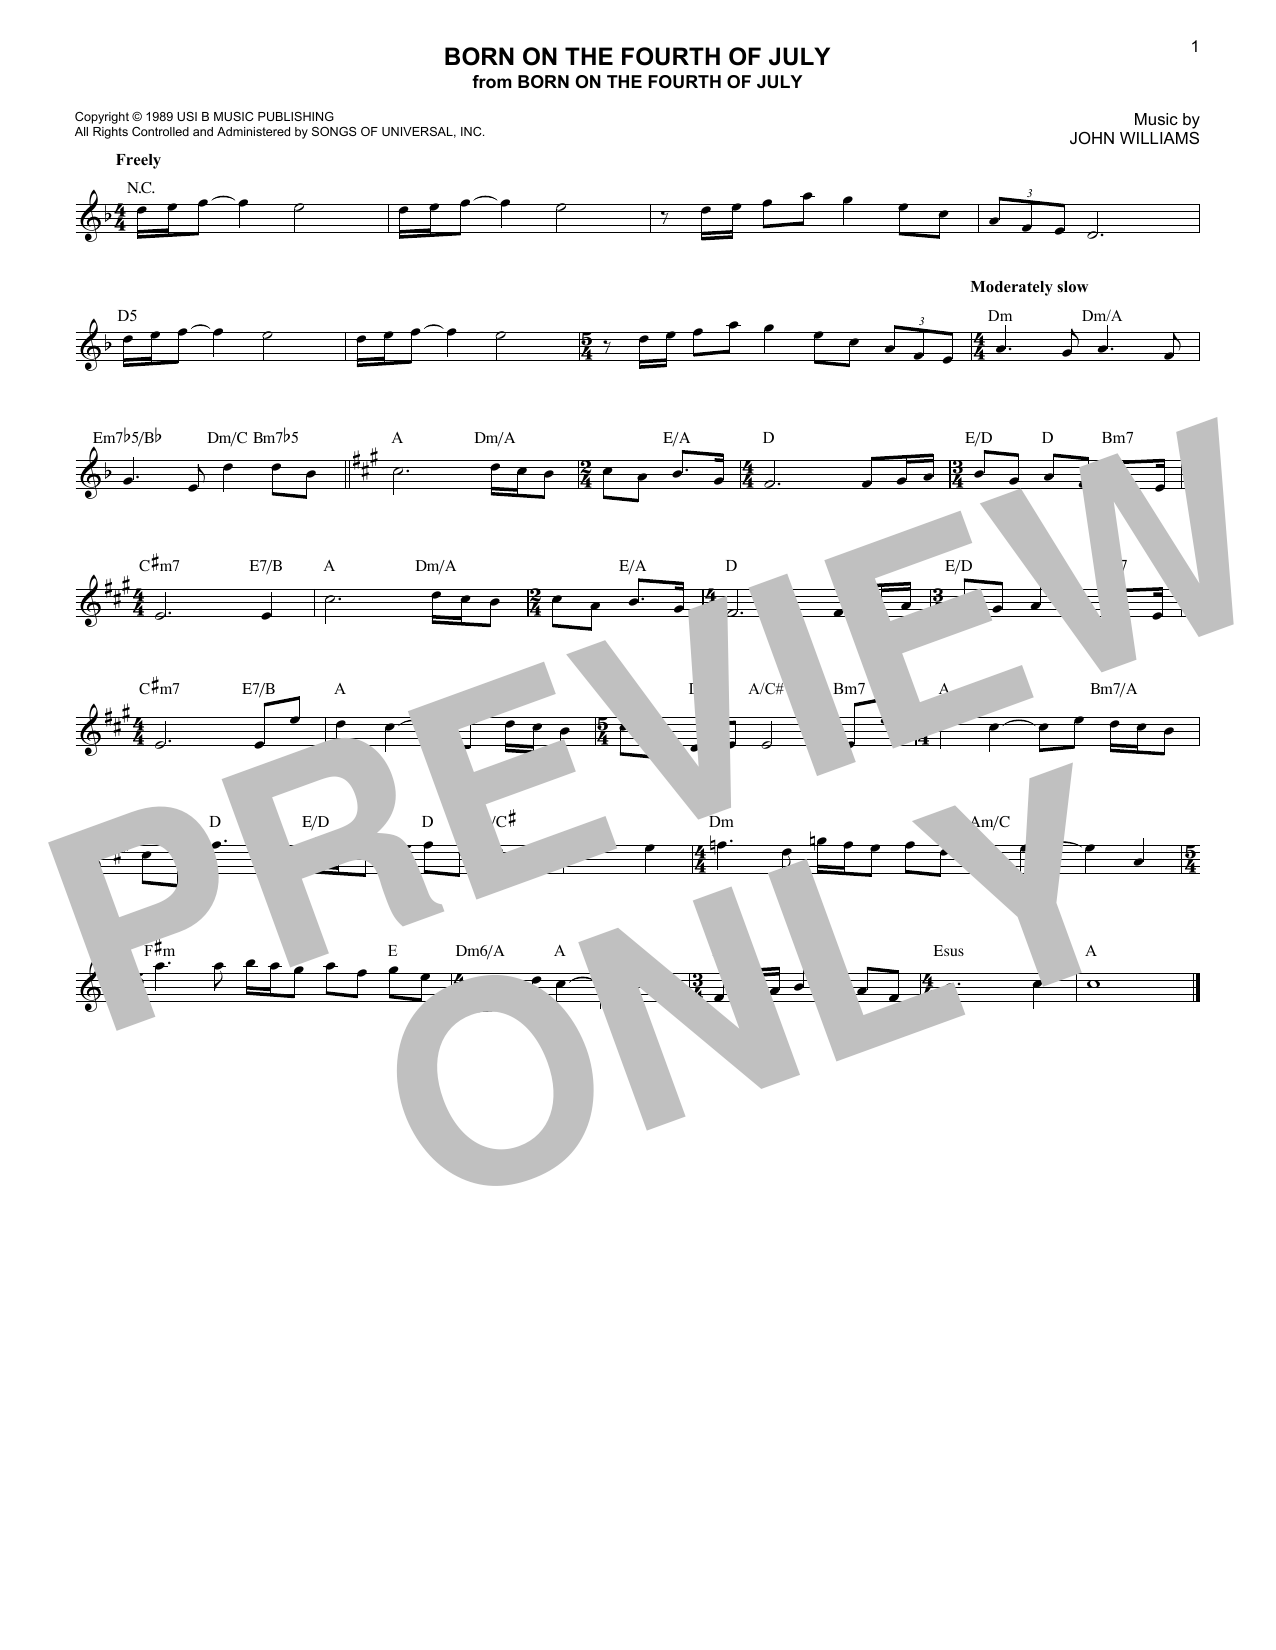 John Williams Born On The Fourth Of July sheet music notes and chords. Download Printable PDF.